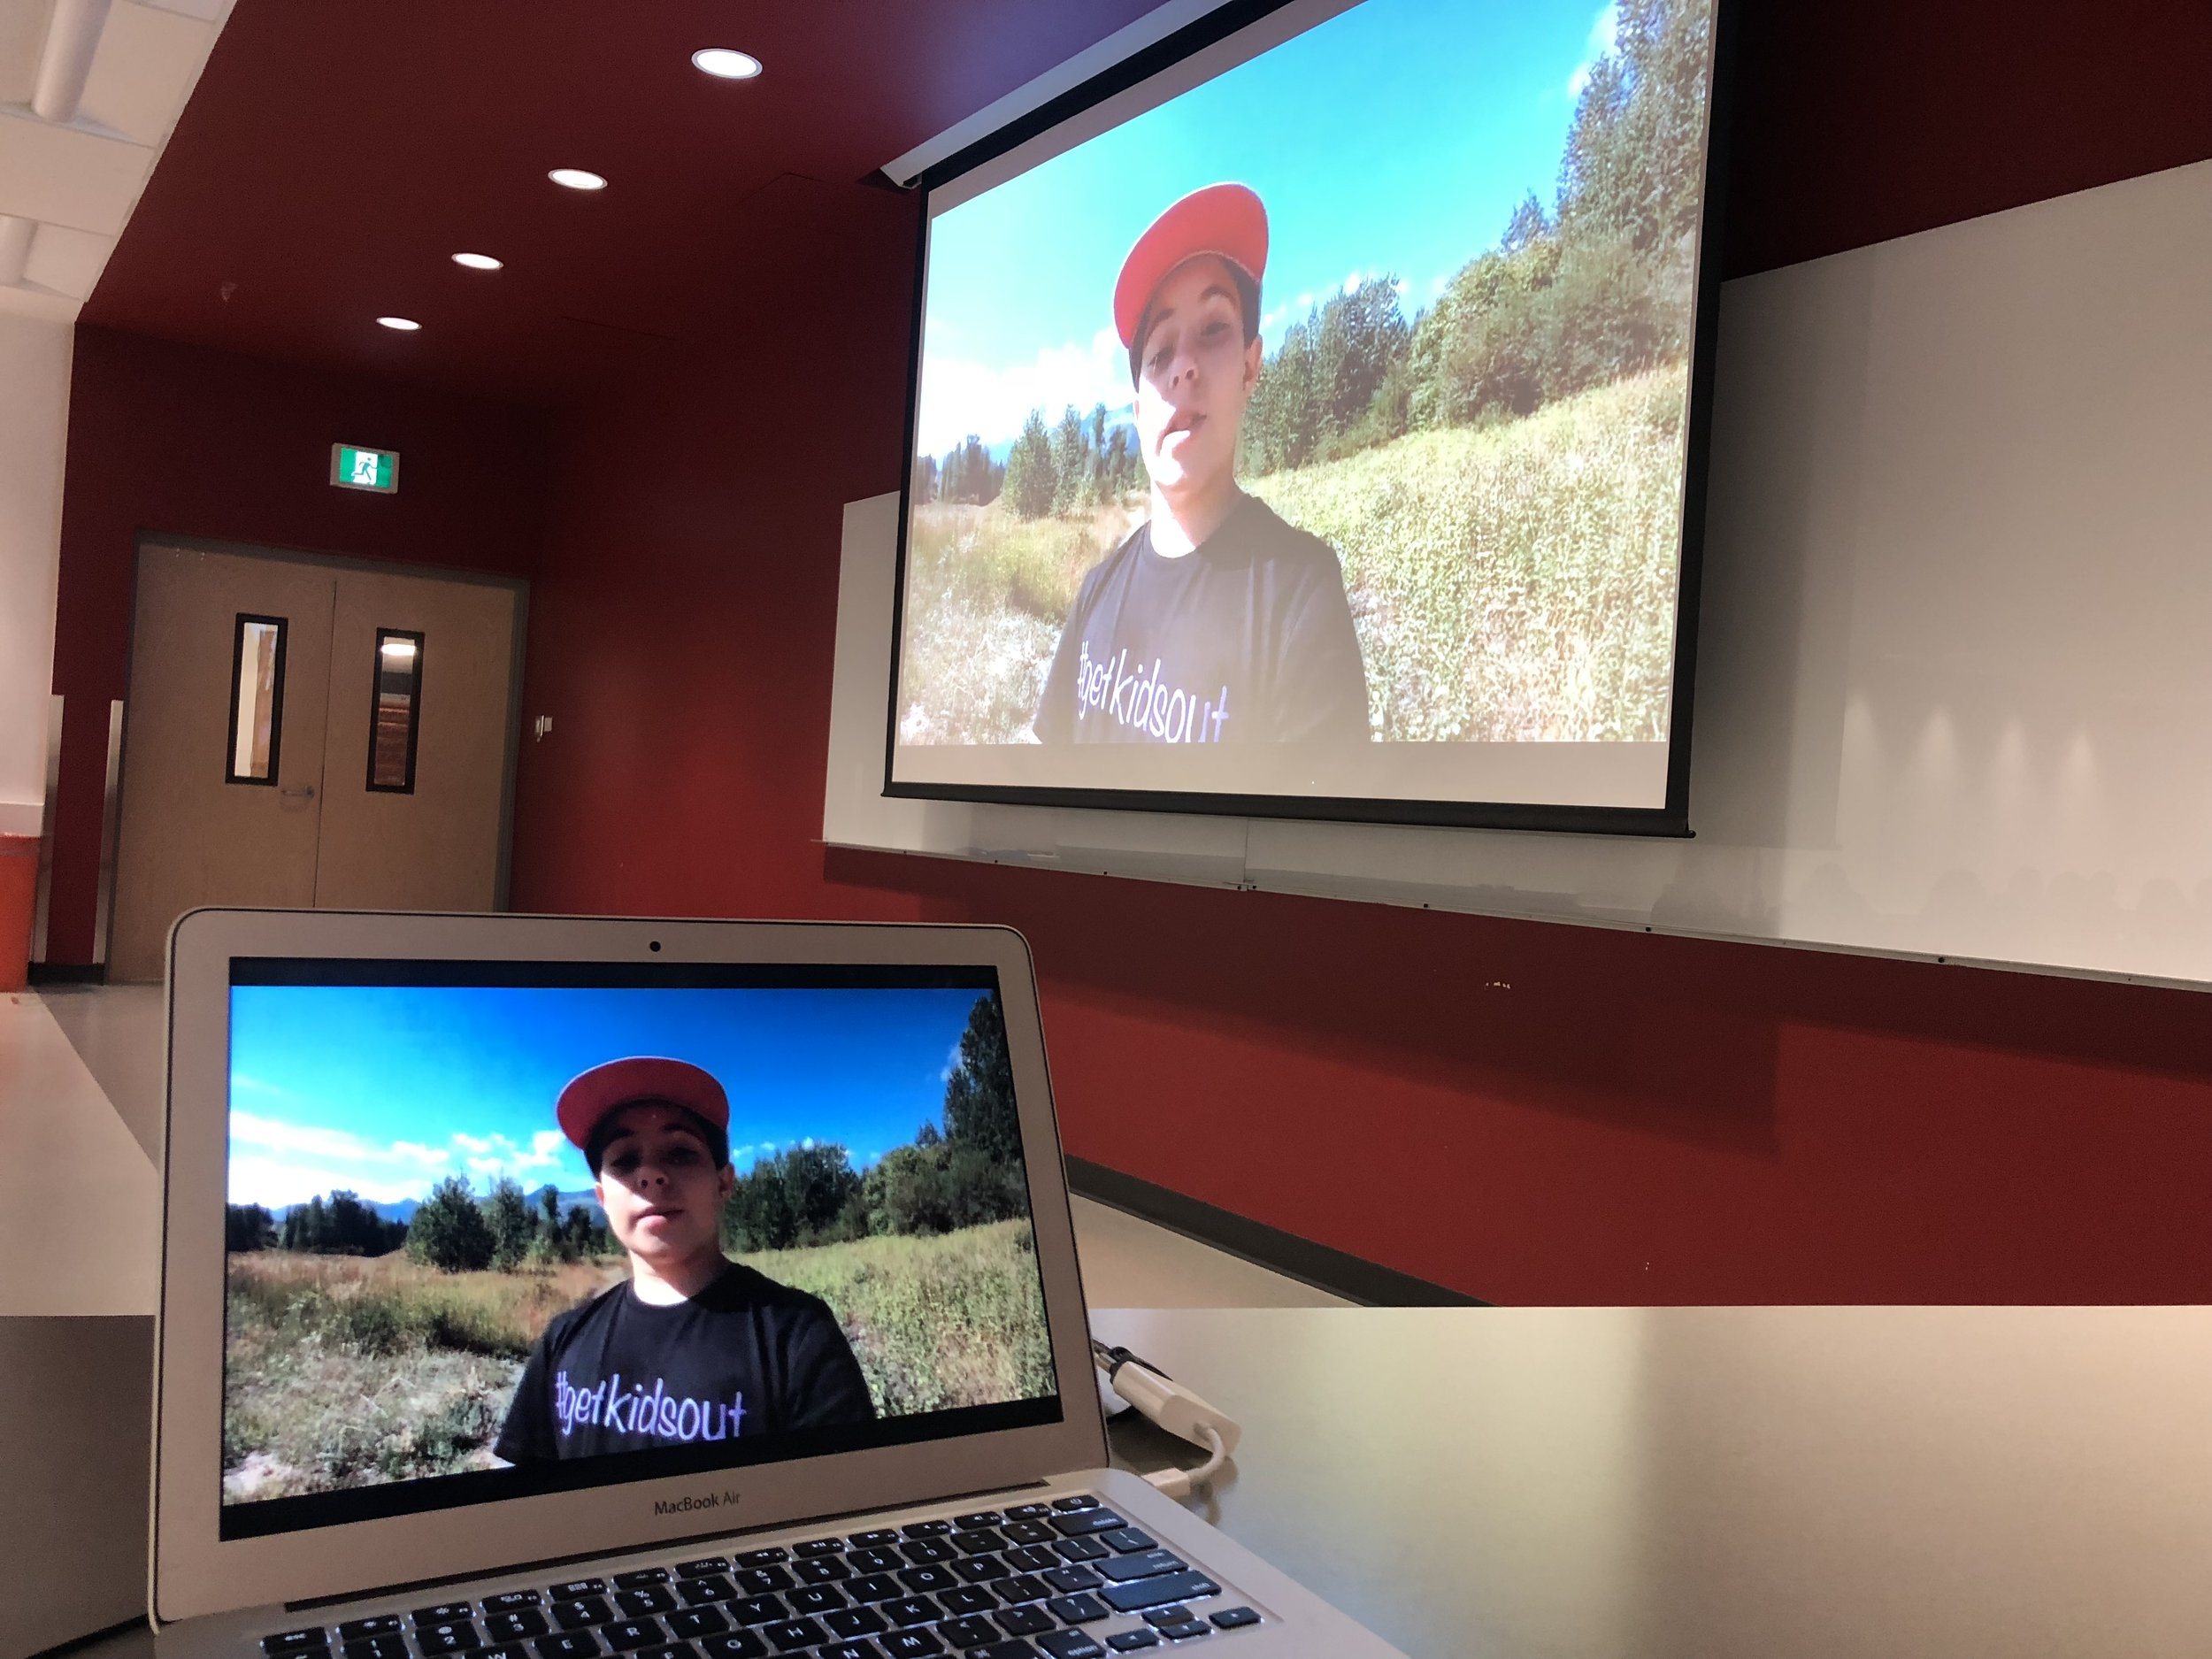 University of Calgary - Here I am on the wall again!! This time in a kinesiology lecture at the University of Calgary…there's lots to be learned even from us kiddos!!-#getkidsout Ambassador SophiePhoto credit: Chris Fenlon-MacDonald